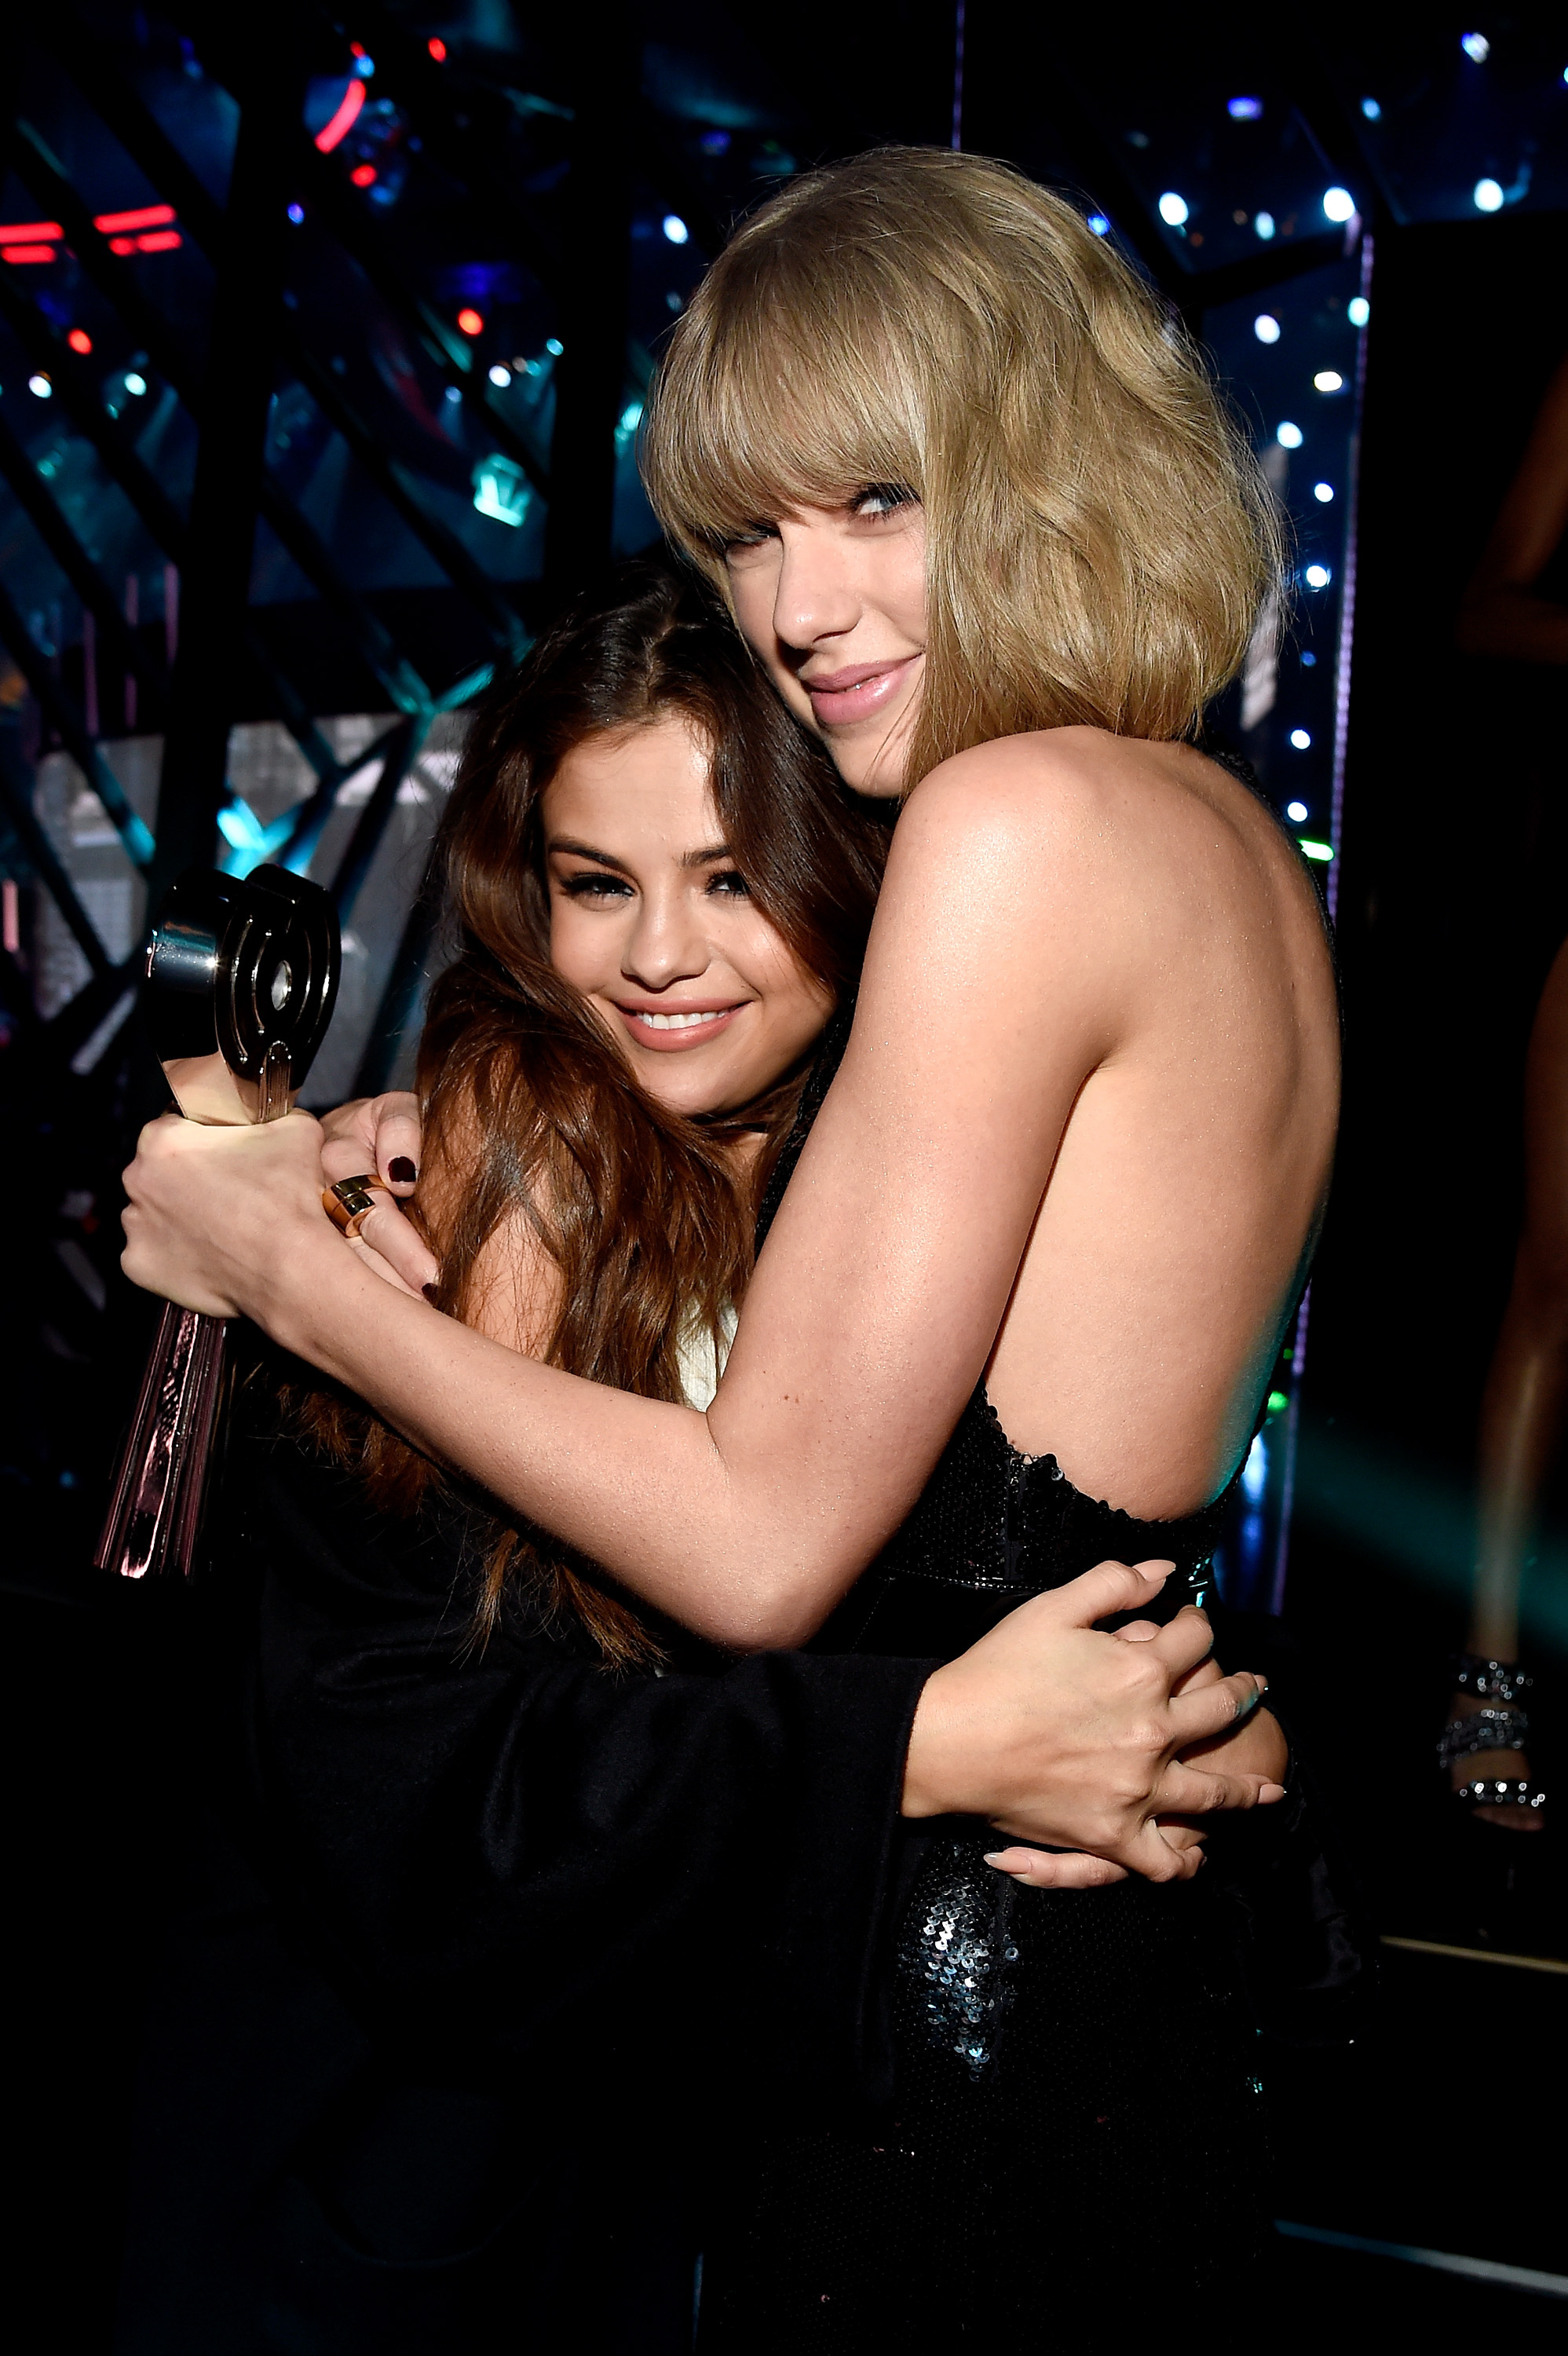 Taylor Swift, winner of the Album of the Year award for '1989,' embraces Selena Gomez backstage at the iHeartRadio Music Awards which broadcasted live on TBS, TNT, AND TRUTV from The Forum on April 3, 2016 in Inglewood